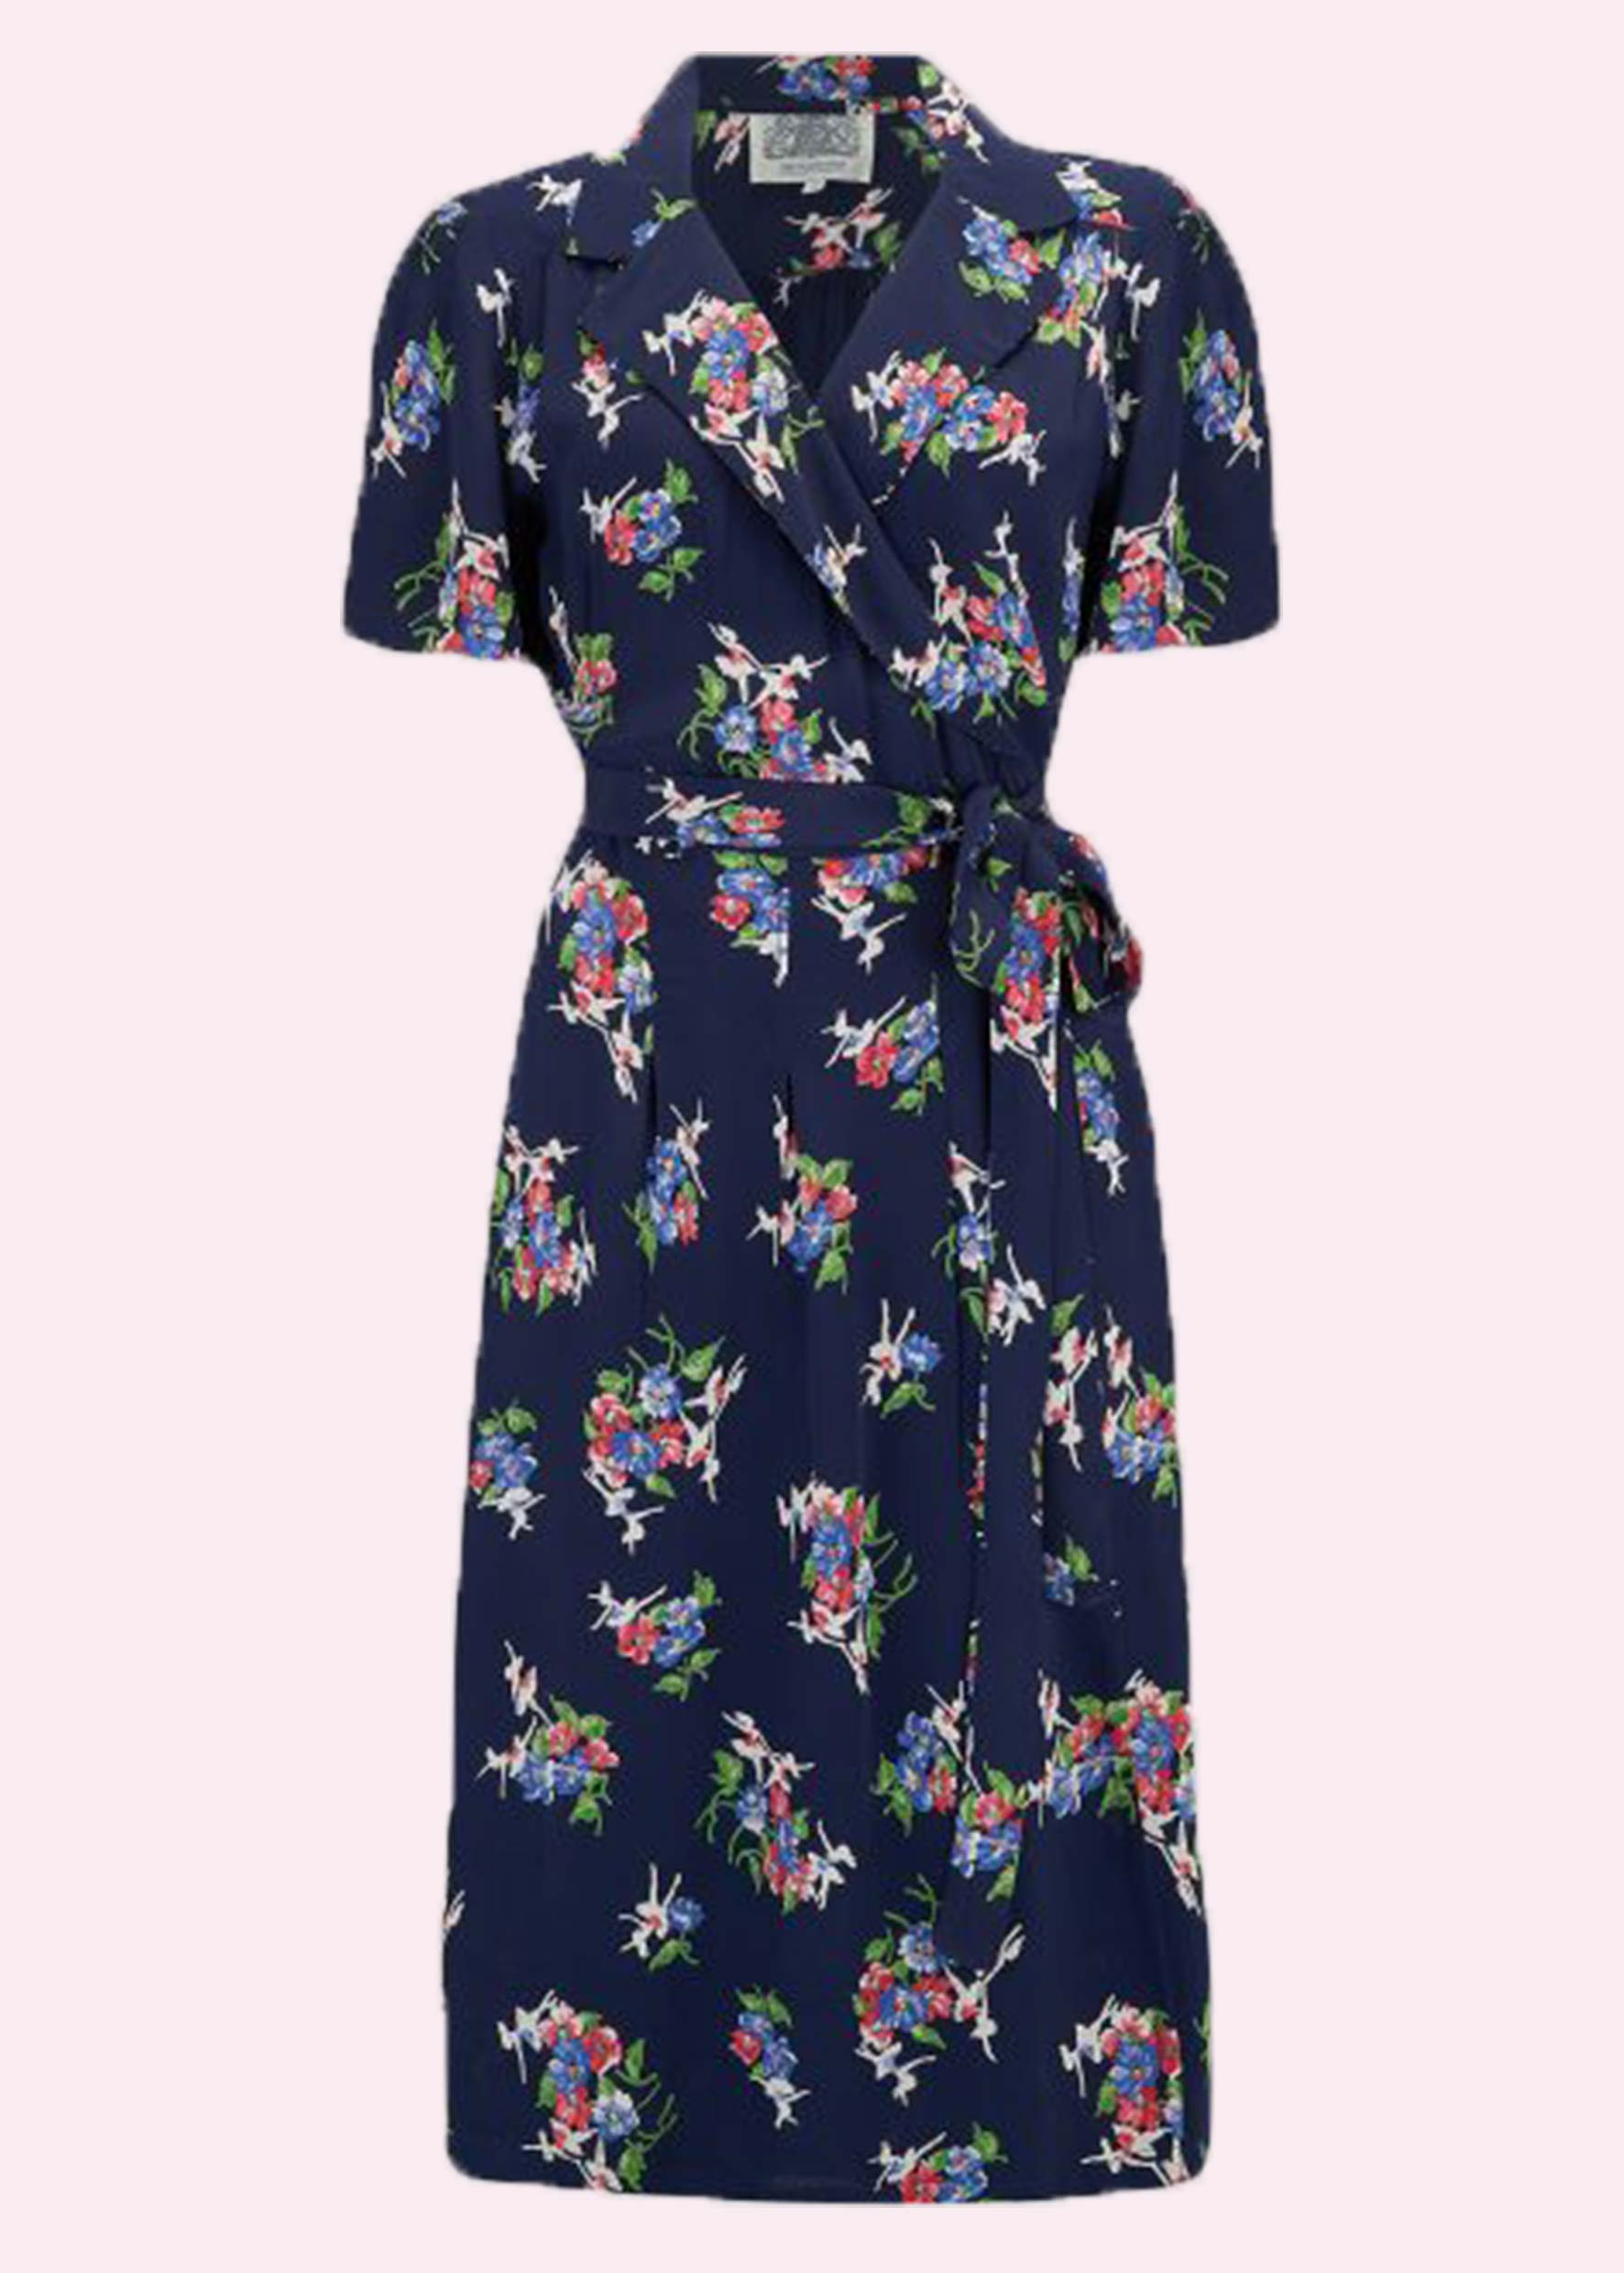 Blue floral floral dress in retro style from Seamstress Of Bloomsbury